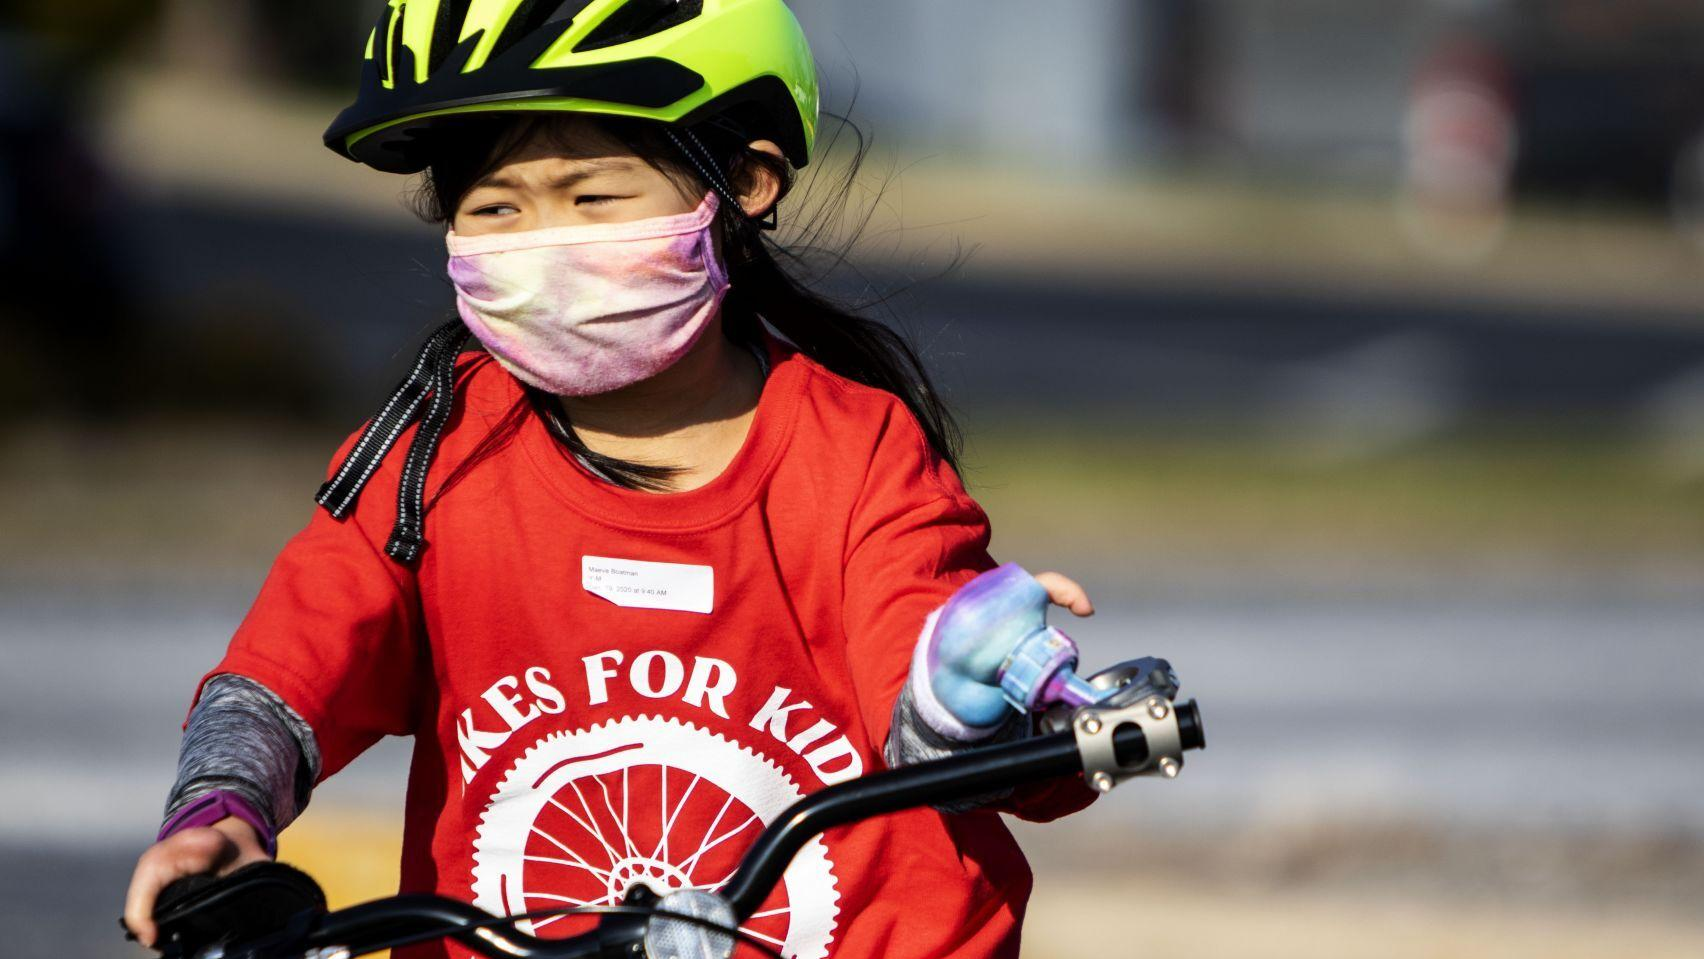 A bike for Christmas: Nonprofit uses 3D printing to adapt a bike for 8-year-old